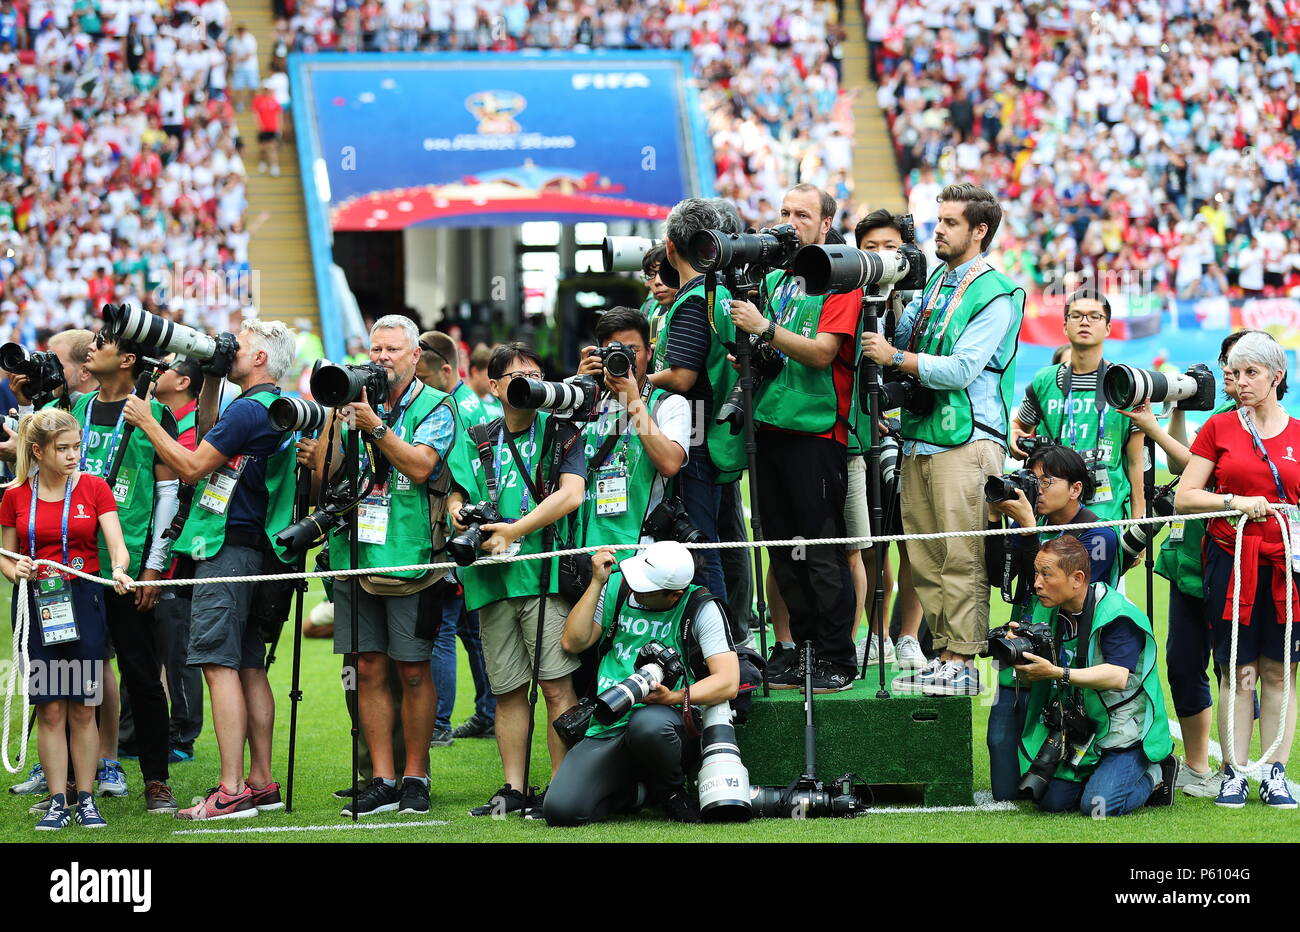 Kazan, Russia. 27th June, 2018.  Photographers at work in a 2018 FIFA World Cup Group F match between South Korea and Germany at Kazan Arena Stadium. Sergei Savostyanov/TASS Credit: ITAR-TASS News Agency/Alamy Live News Stock Photo